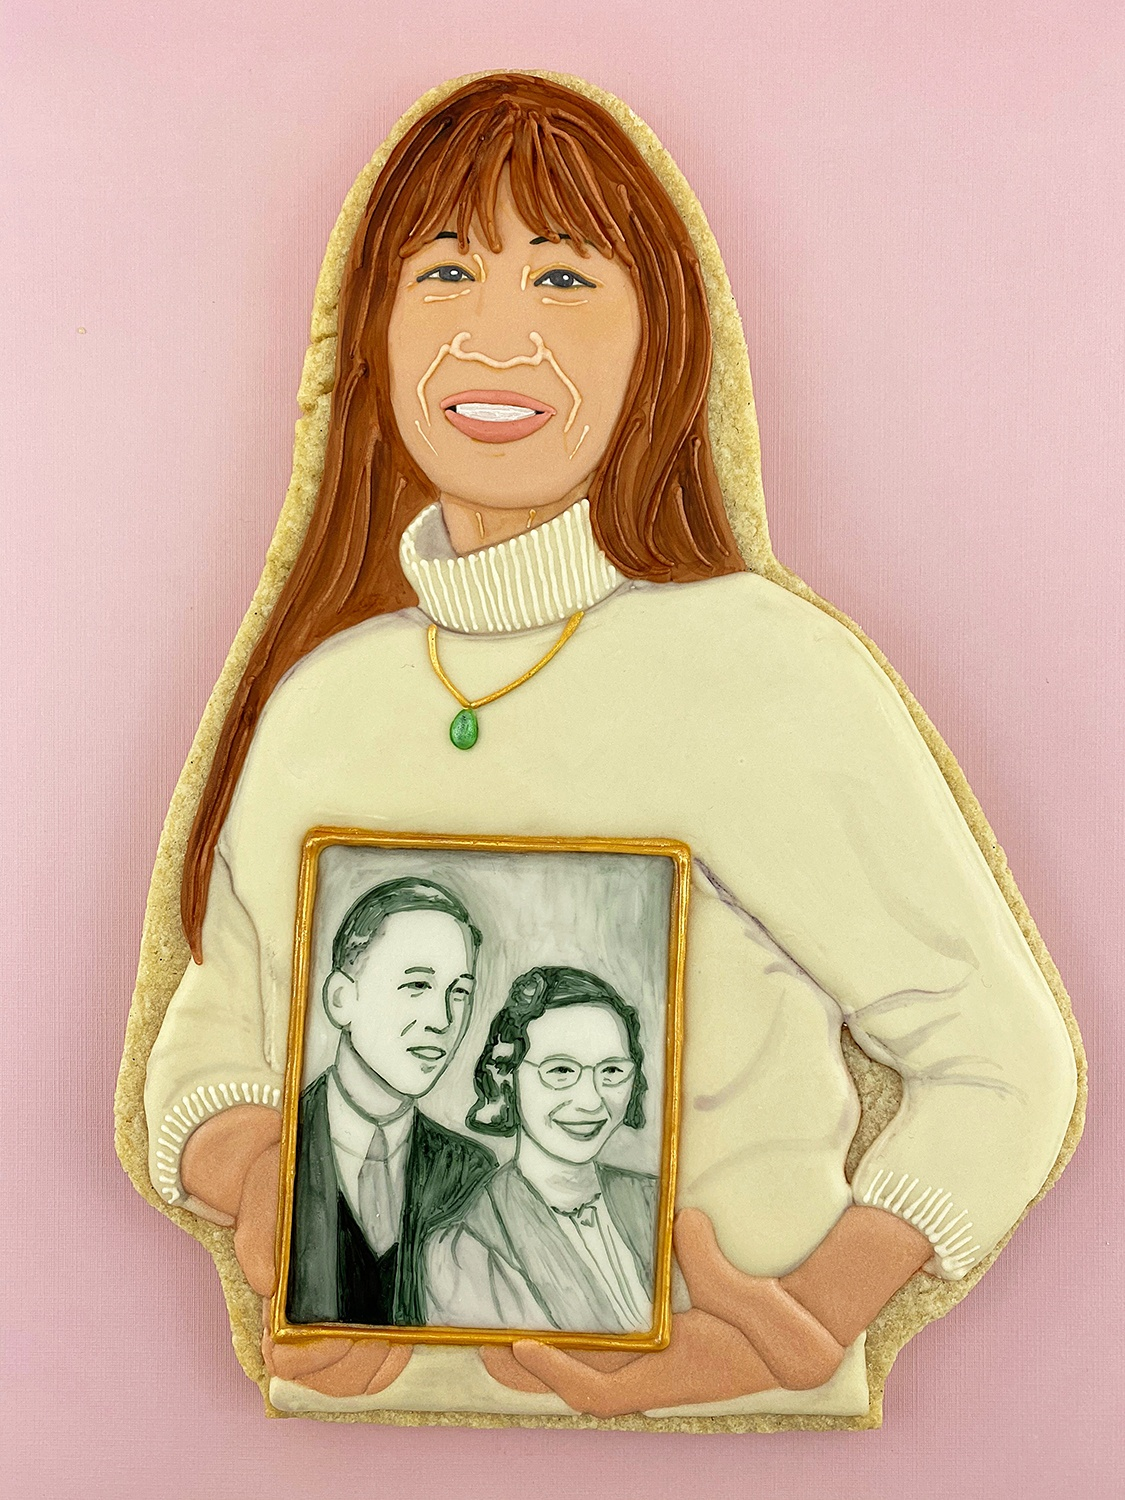 Karen Fung Yee holding a portrait of her parents, by Jasmine Cho, 2020. ©Jasmine Cho